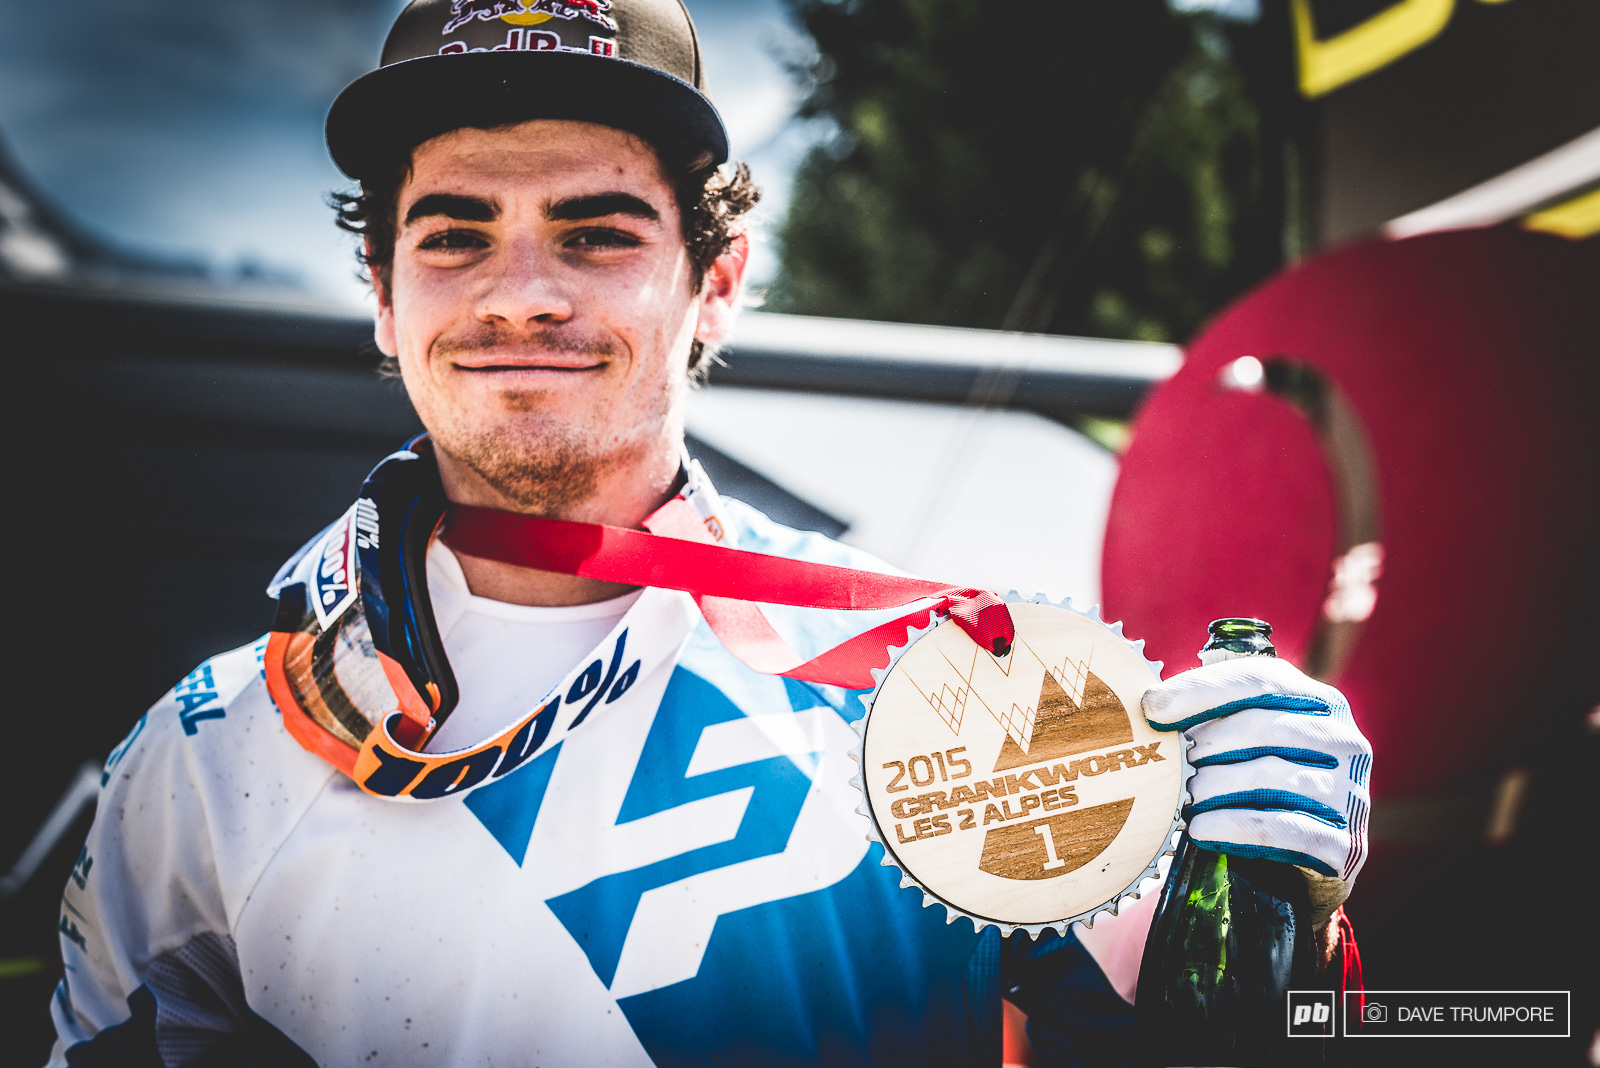 Loic would make it 2 for 2 in the Crankworx series backing up his win from NZ with another in Les 2 Alps.